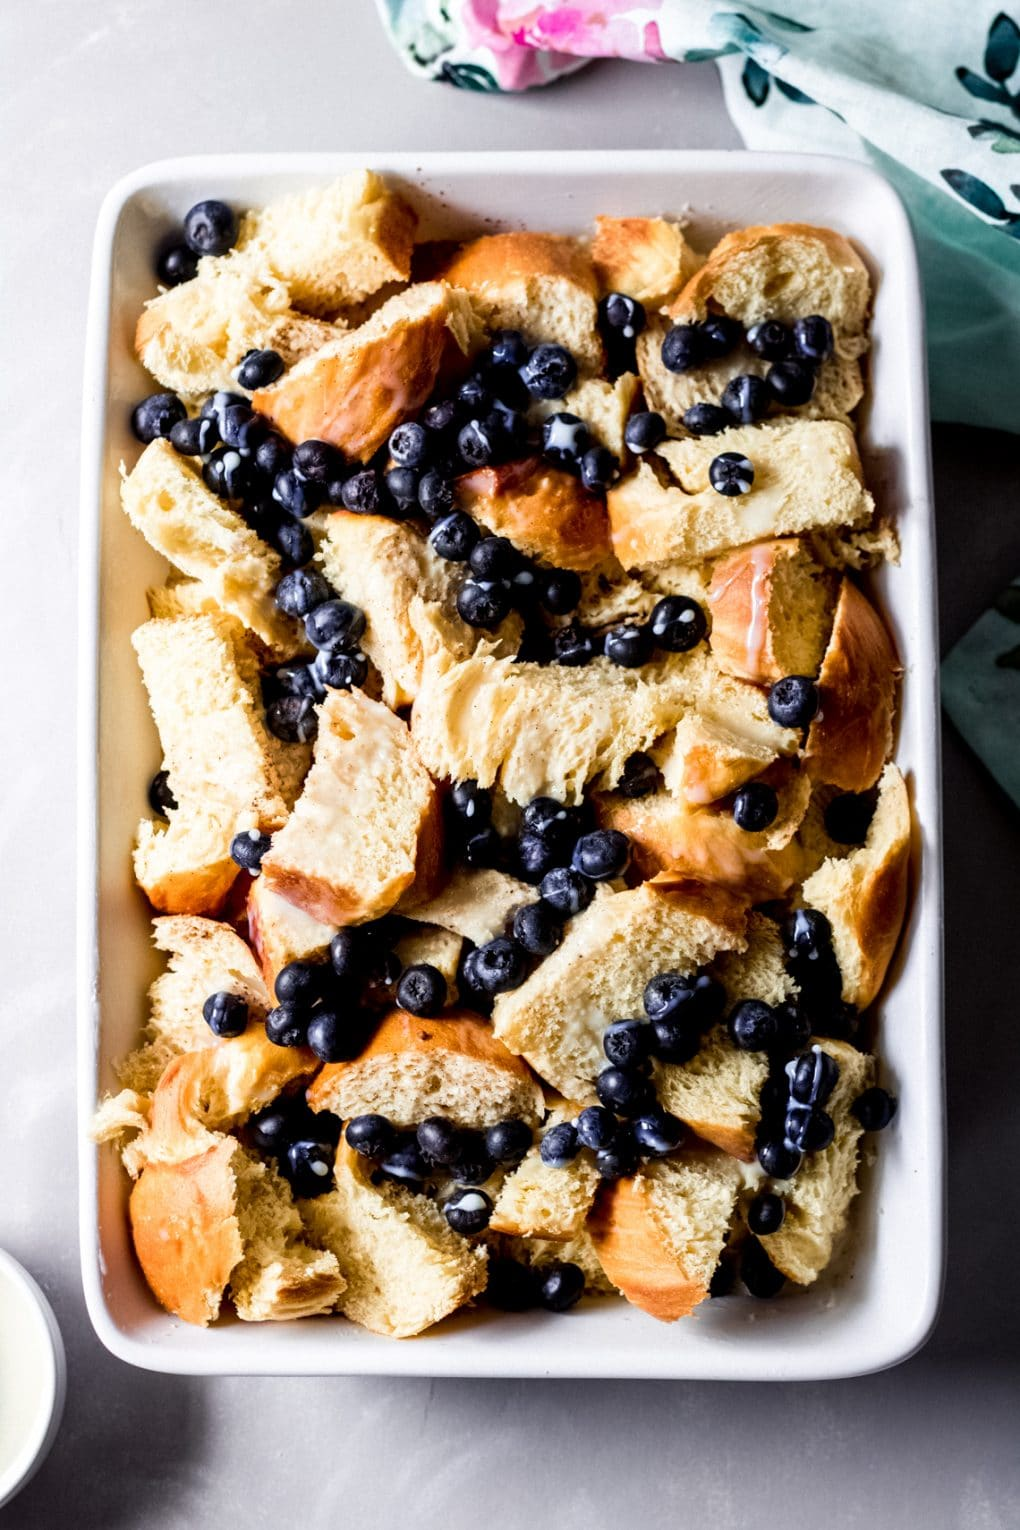 unbaked blueberry french toast bake